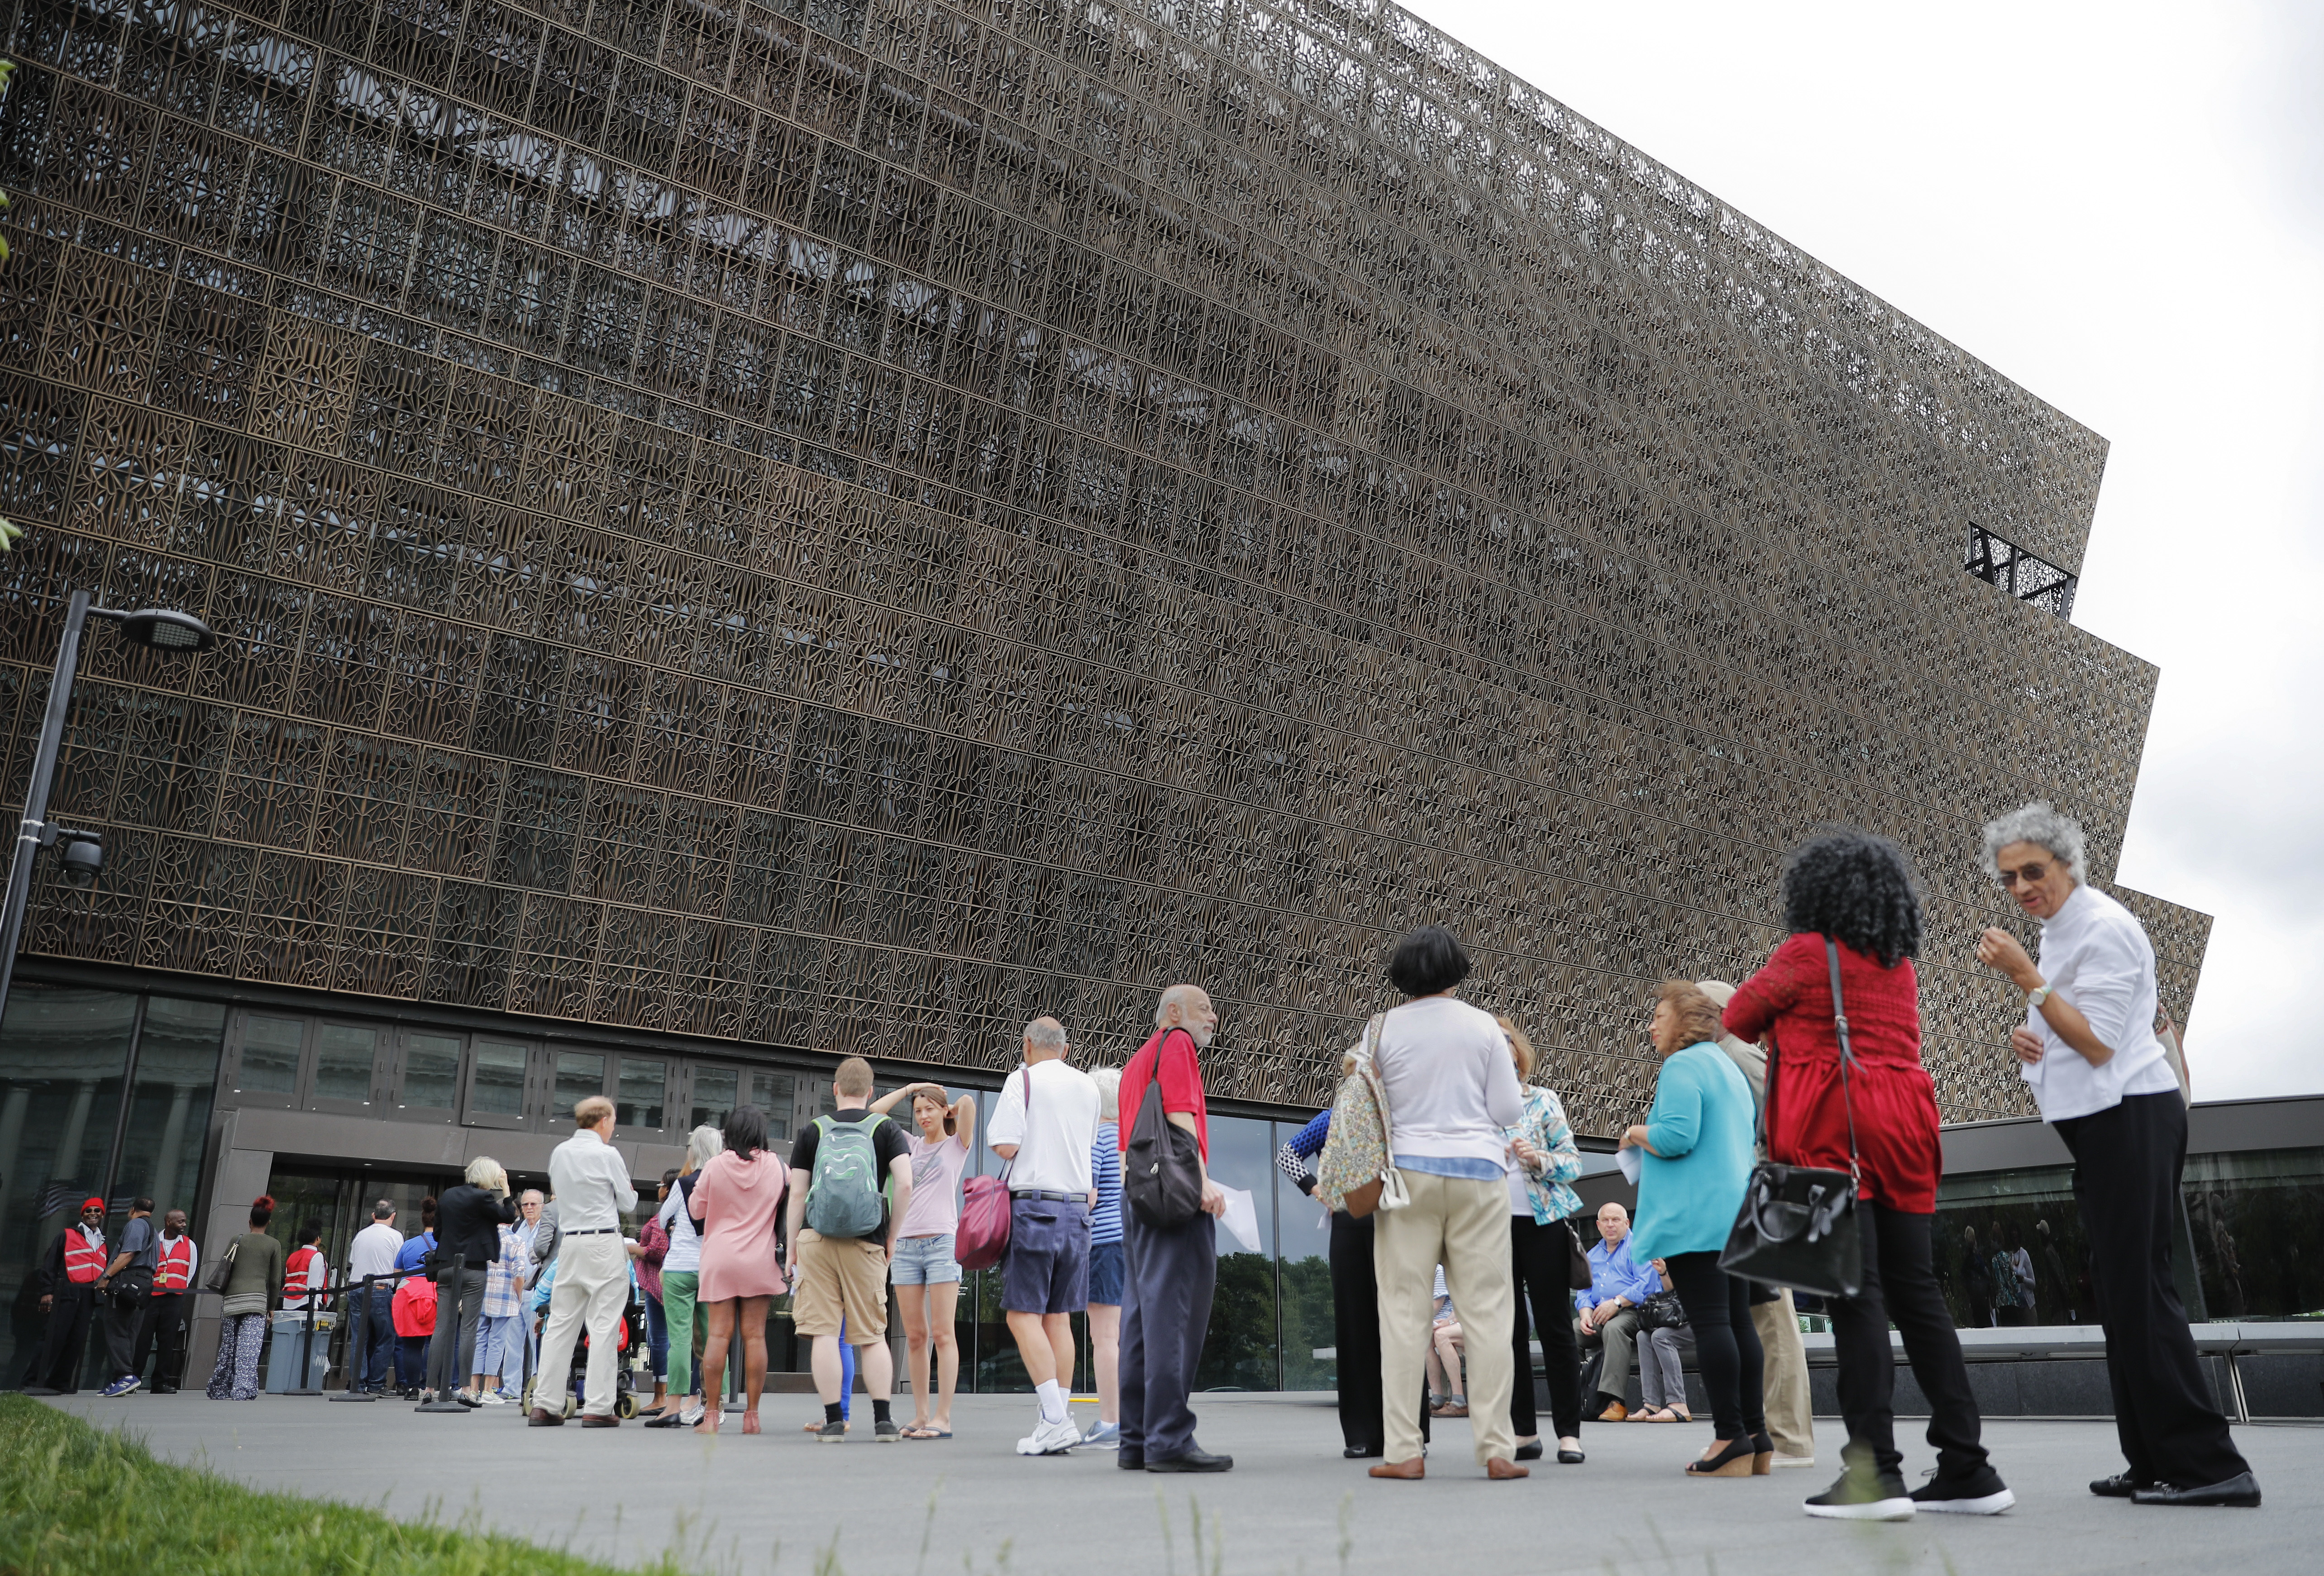 FILE- In this May 1, 2017, file photo, people wait in line to enter the Smithsonian National Museum of African American History and Cultural on the National Mall in Washington. Smithsonian Secretary David Skorton said in a statement that a noose was found on Wednesday, May 31, in the Segregation Gallery of the museum. (AP Photo/Pablo Martinez Monsivais, File)